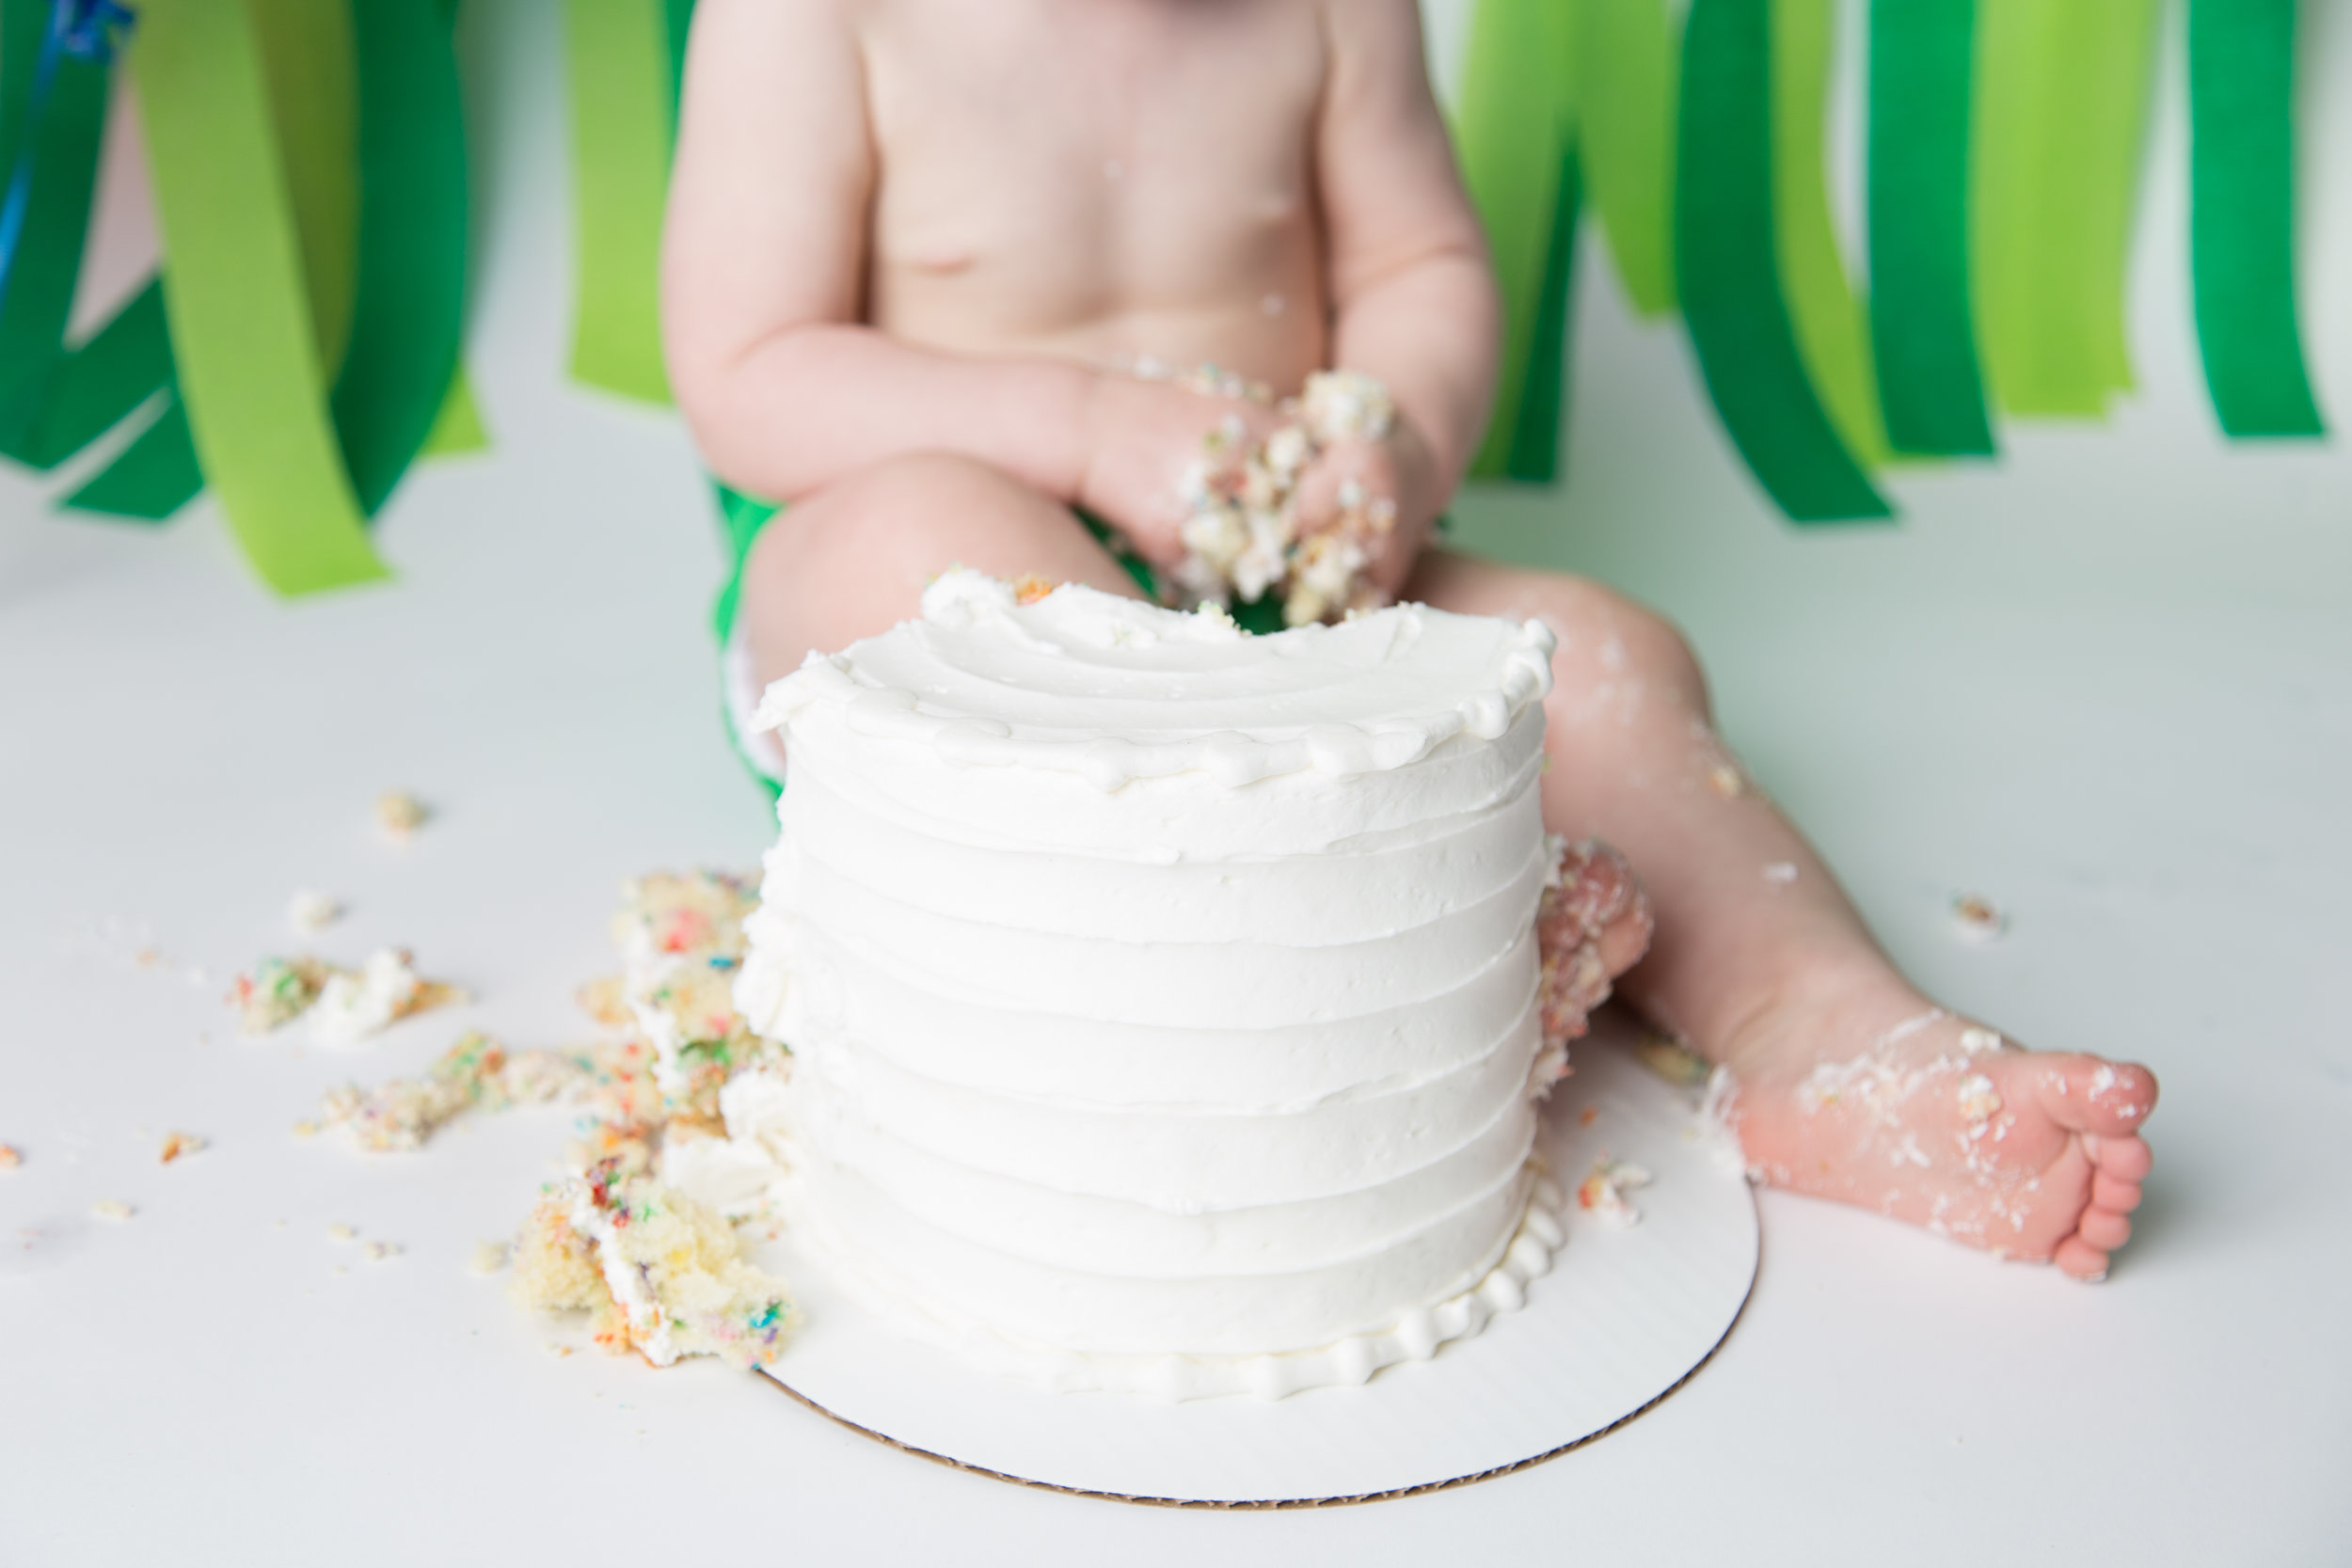 Cake Smash - A 30 minute session in our studio.You bring the cake (or other creative and/or edible art product), and we'll clean the mess!Streamers, balloons, and other one-time-use decor can be added at an additional rate. Plain white backdrop/floordrop is included.